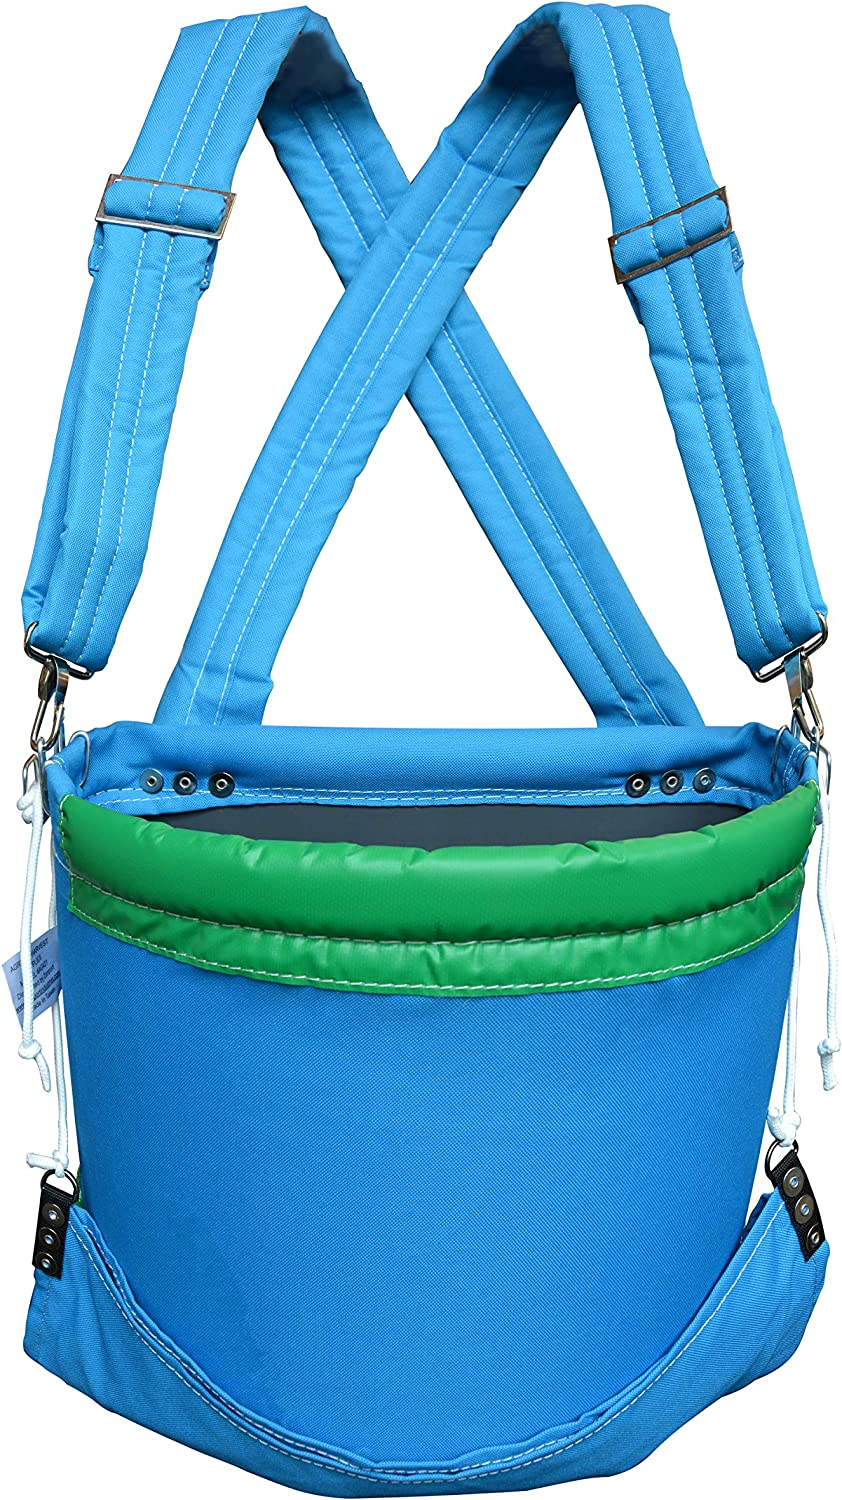 Zenport AG421 Agrikon Harvest Apple Barrel Fruit Picking Bag, 1 Bushel